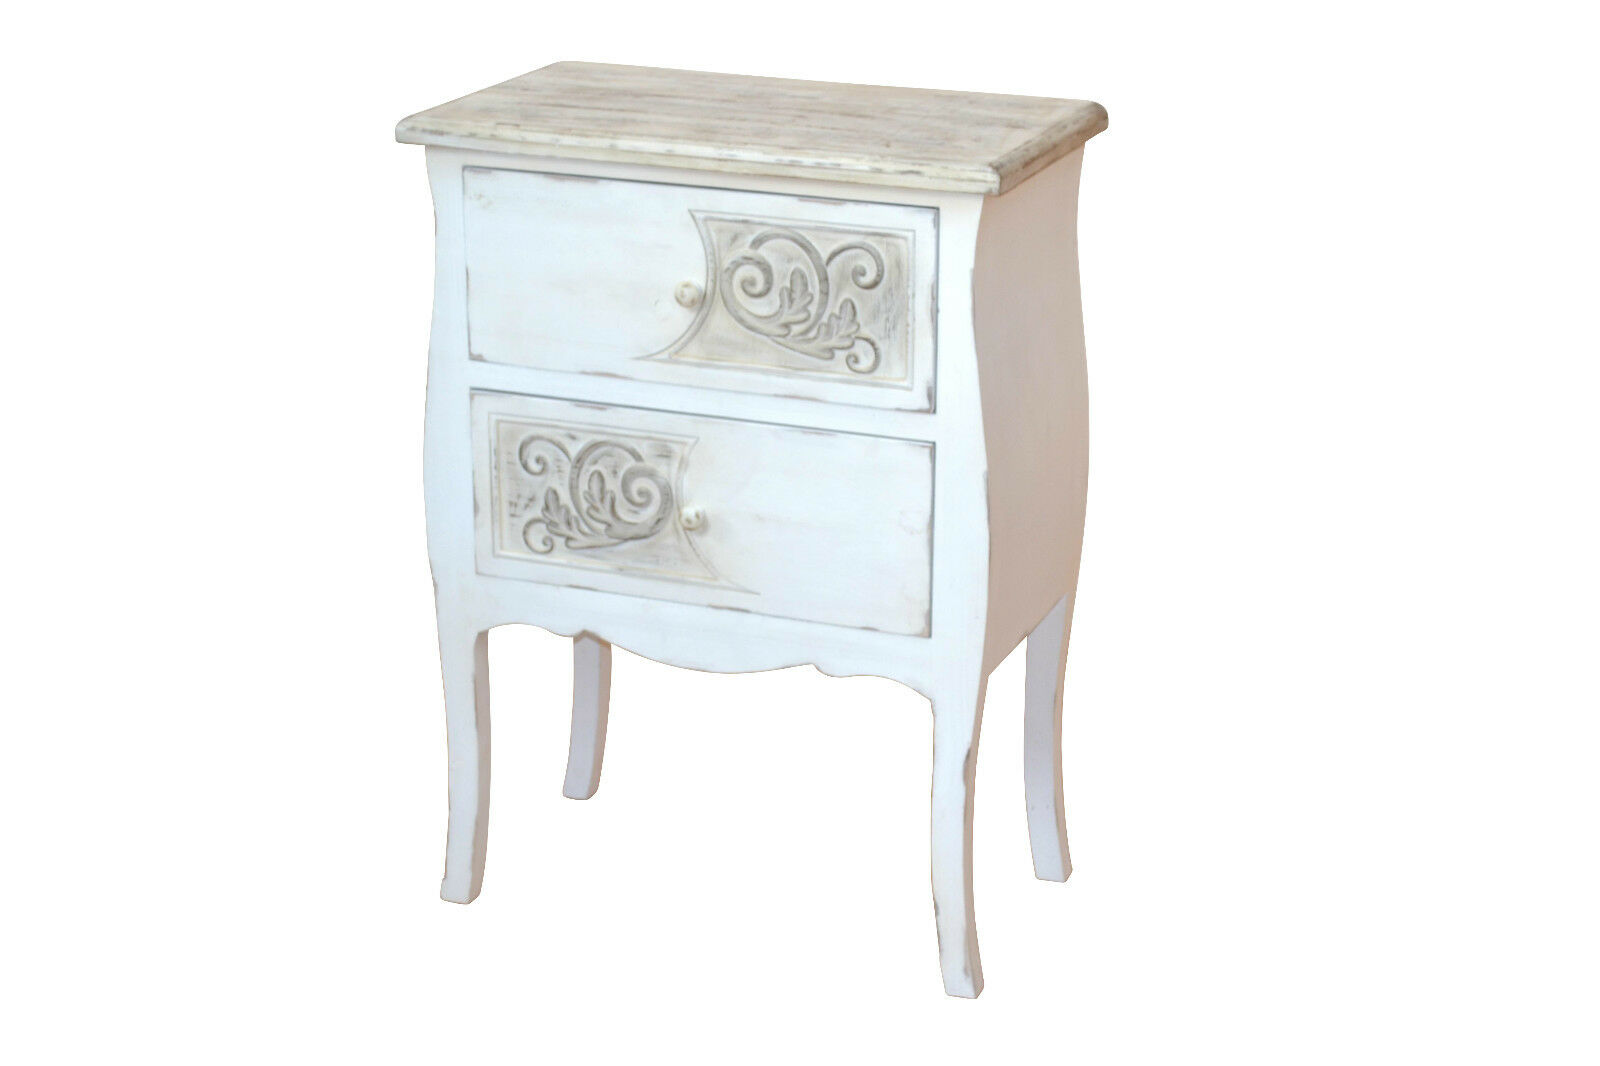 Kommode Mint Kommode Vintage Shabby Affordable Affordable Cheap Cheap